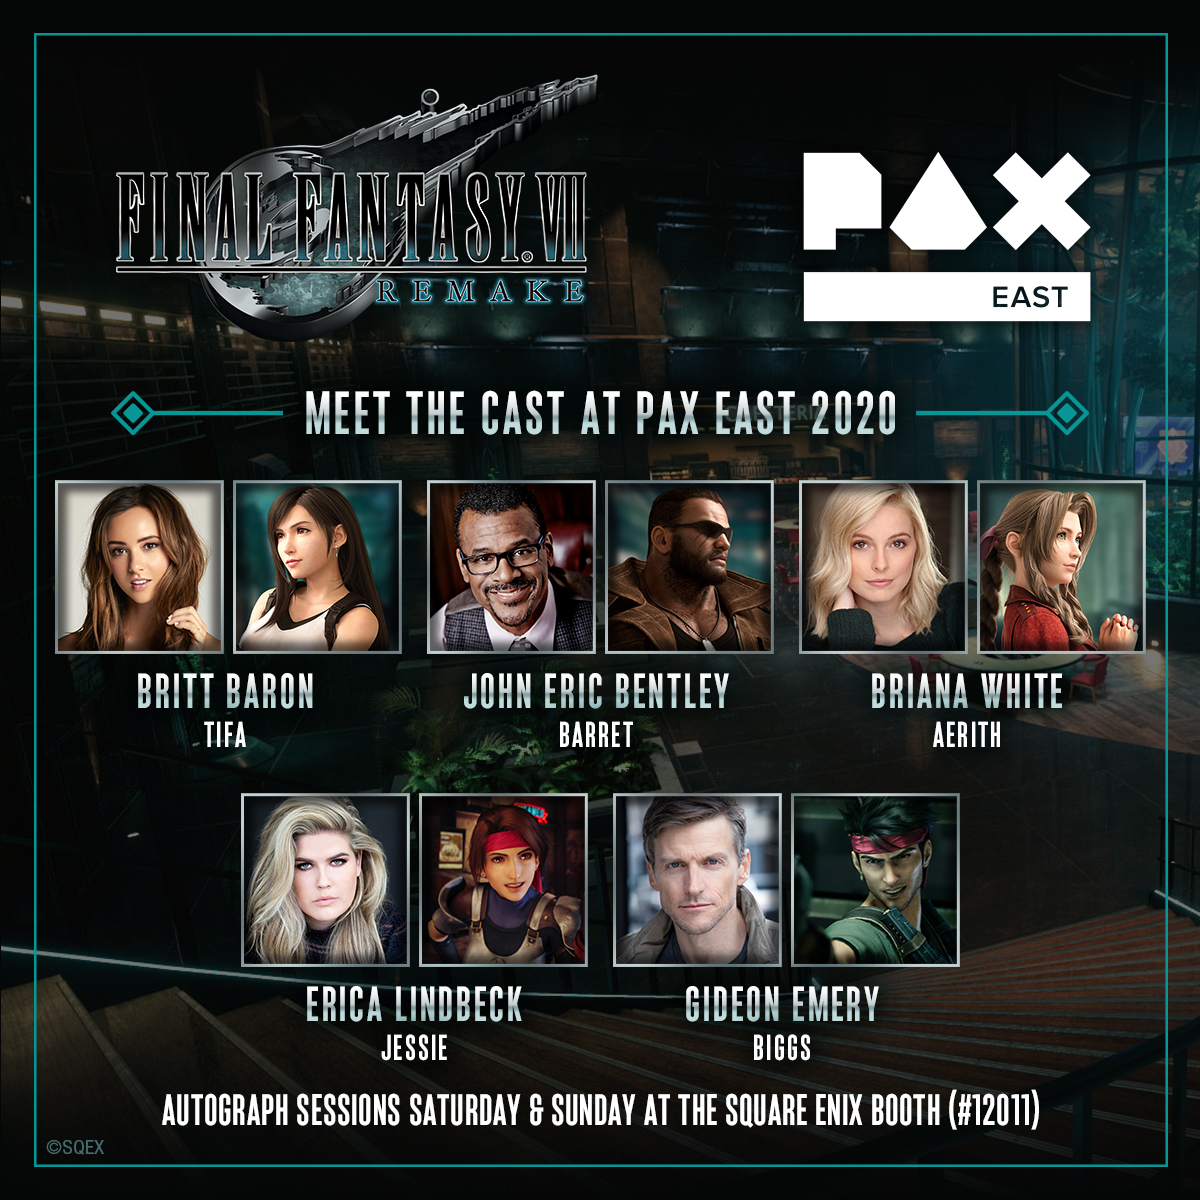 #PAXEast attendees! Meet the cast of #FinalFantasy VII Remake on Saturday and Sunday at the @SquareEnix booth! We'll have two autograph sessions per day, with tickets handed out the morning of that day's sessions. See you there! #FF7R